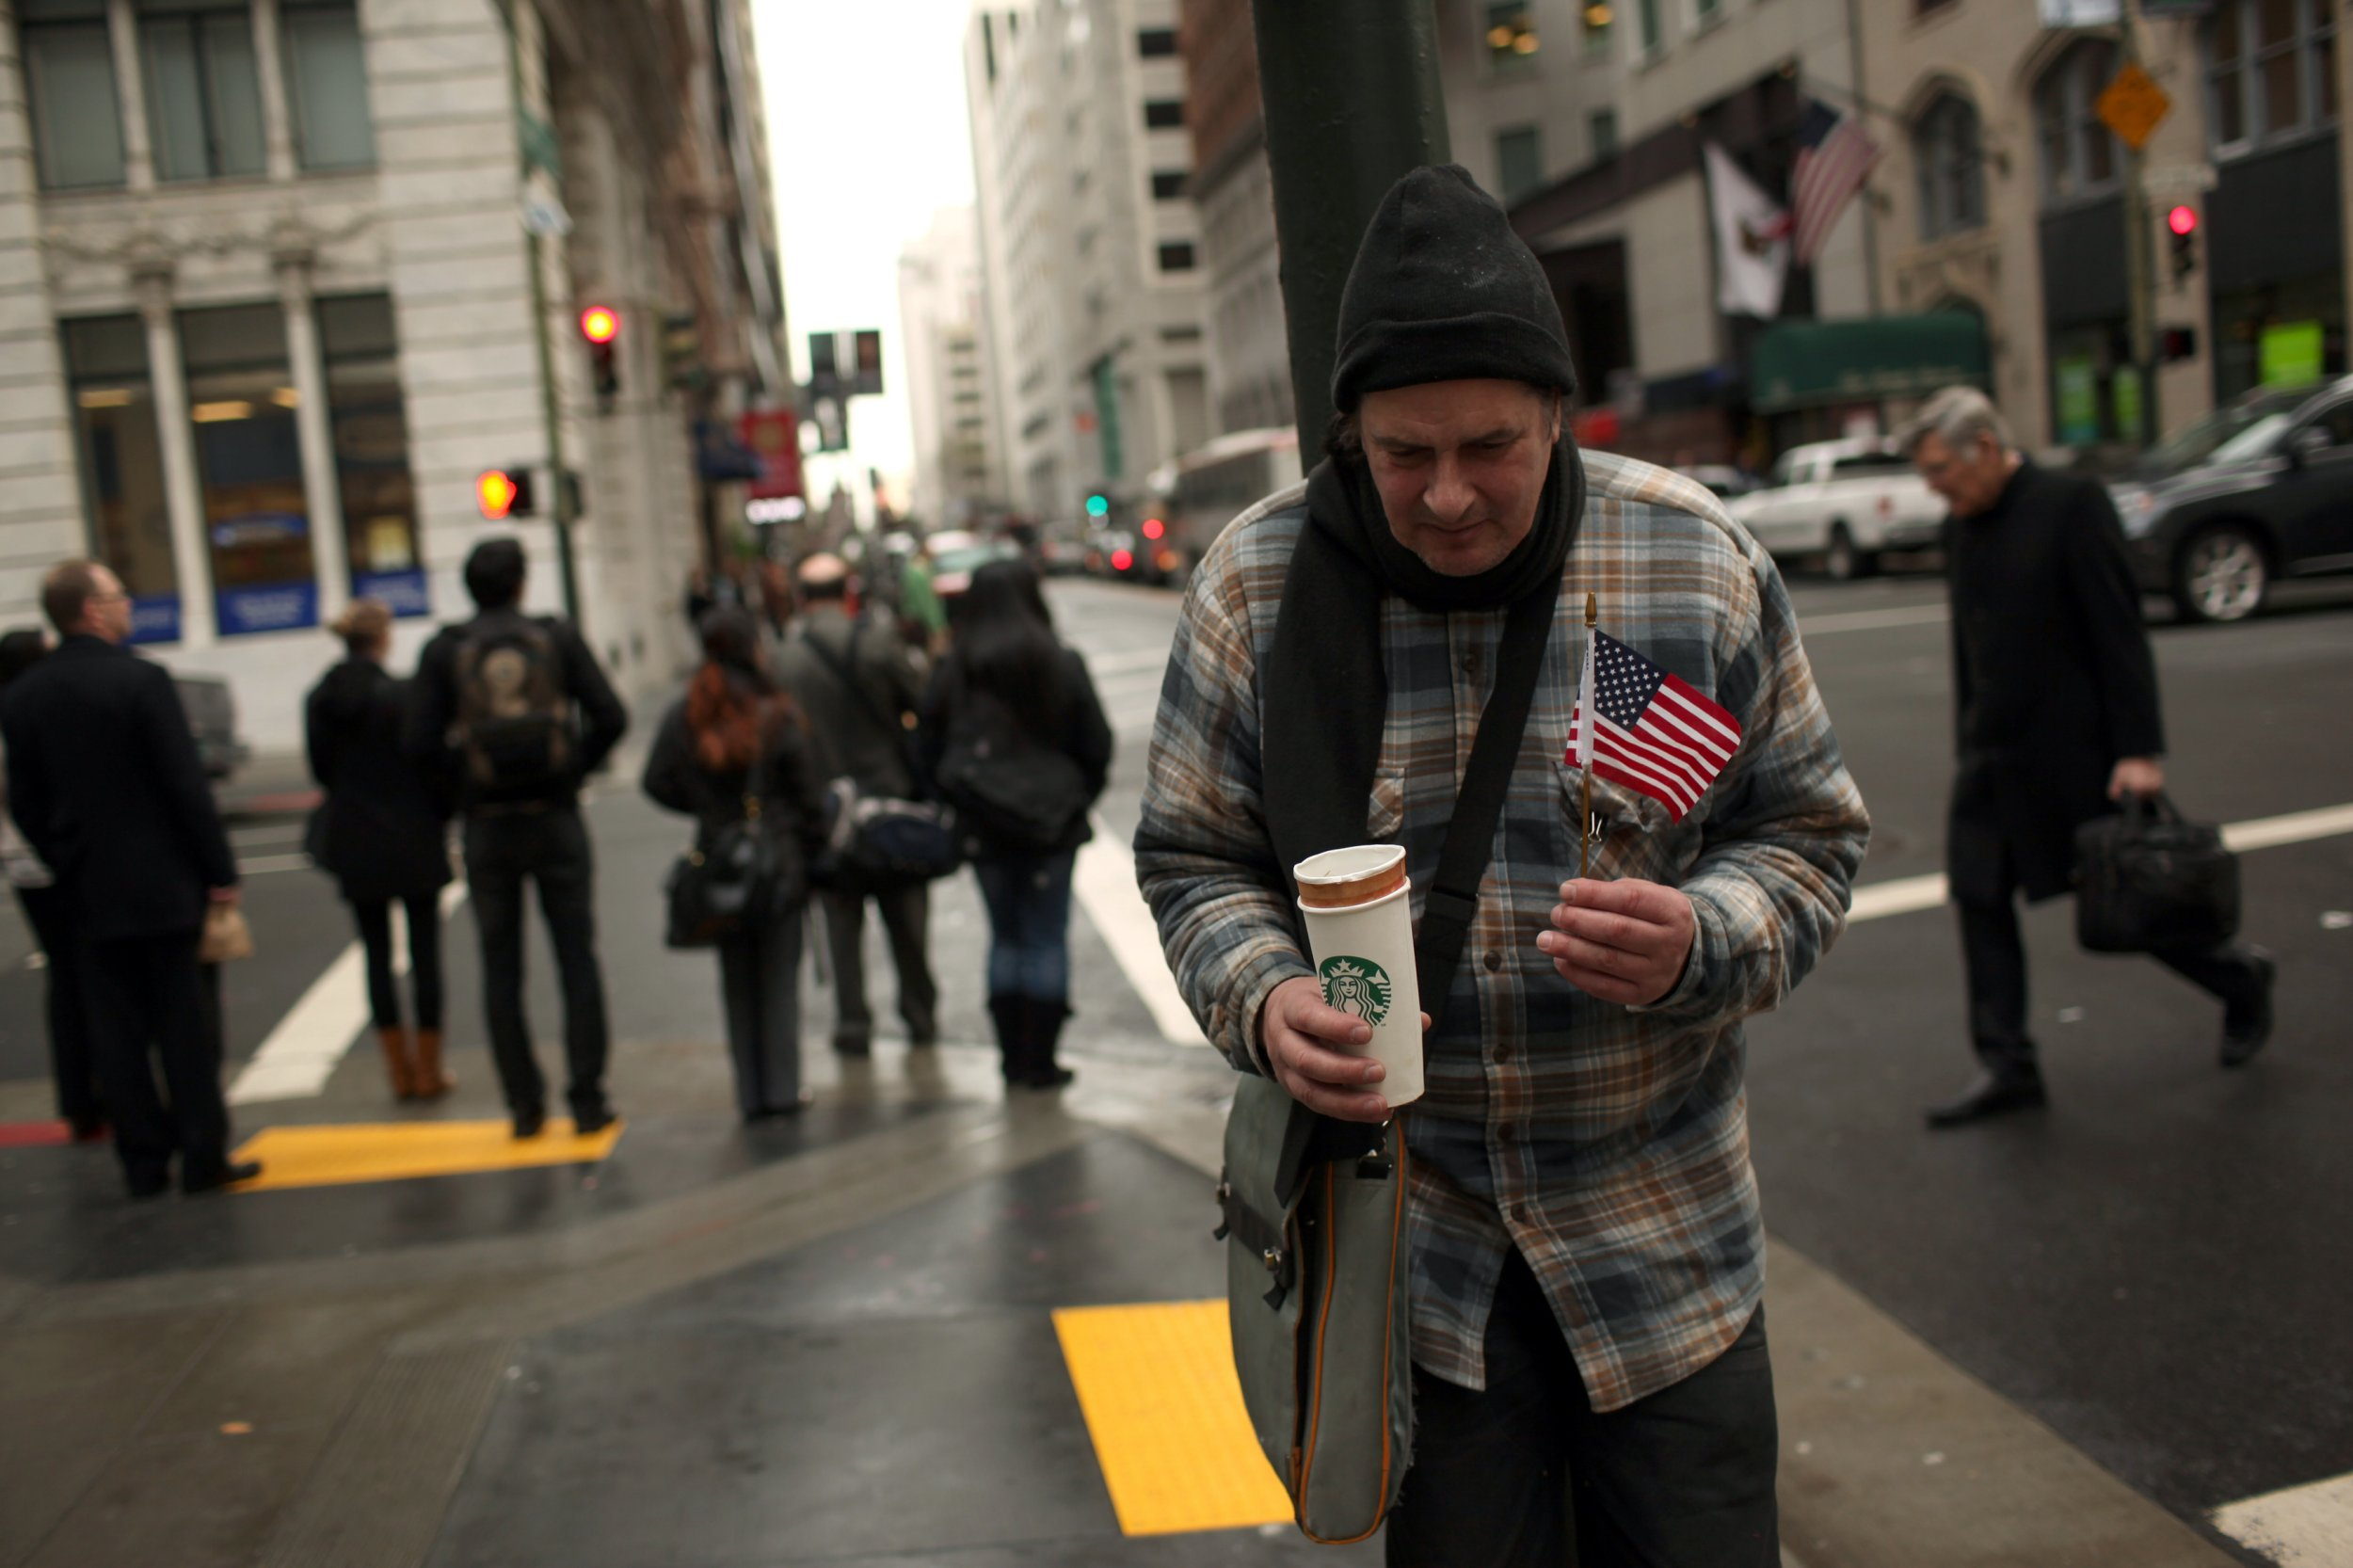 Man rants about the sight of homeless 'riff-raff' on his commute